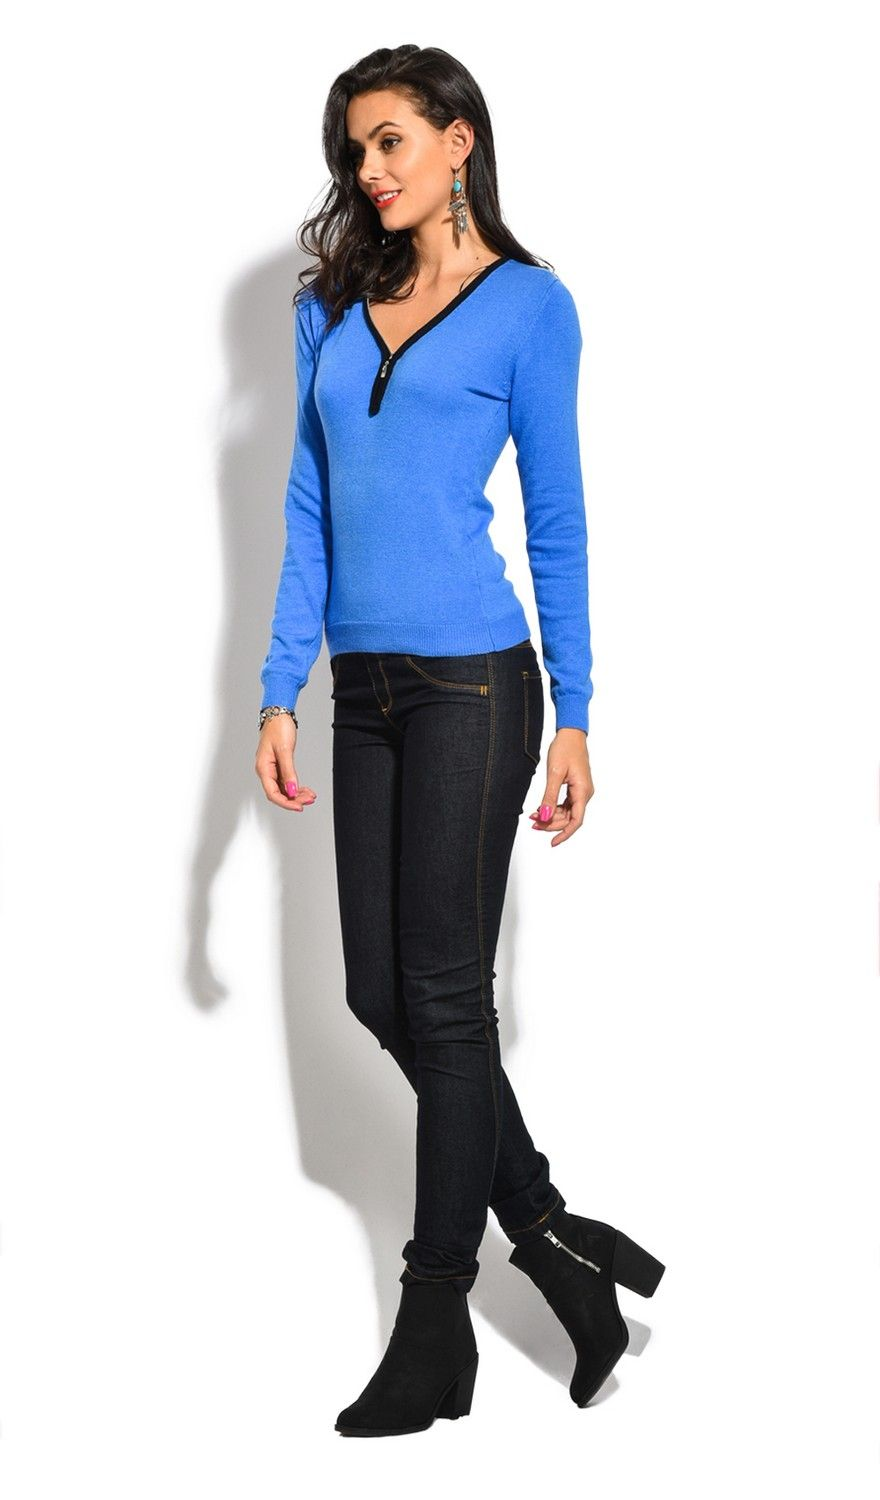 Assuili V-Neck Long Sleeve Two-tone Zip Detail Sweater in Blue